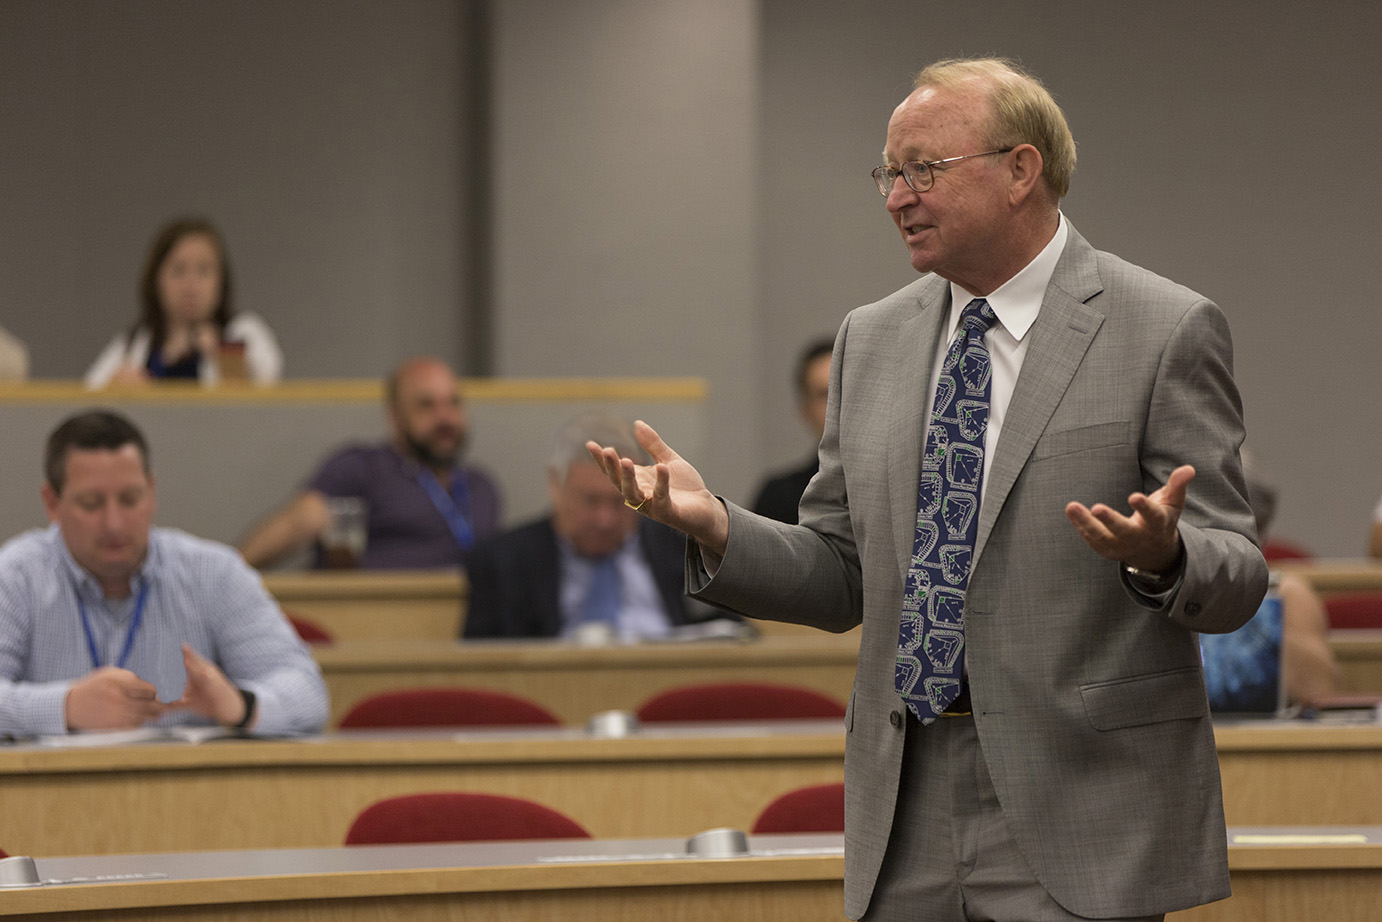 Jim Mahoney conducting educational workshop